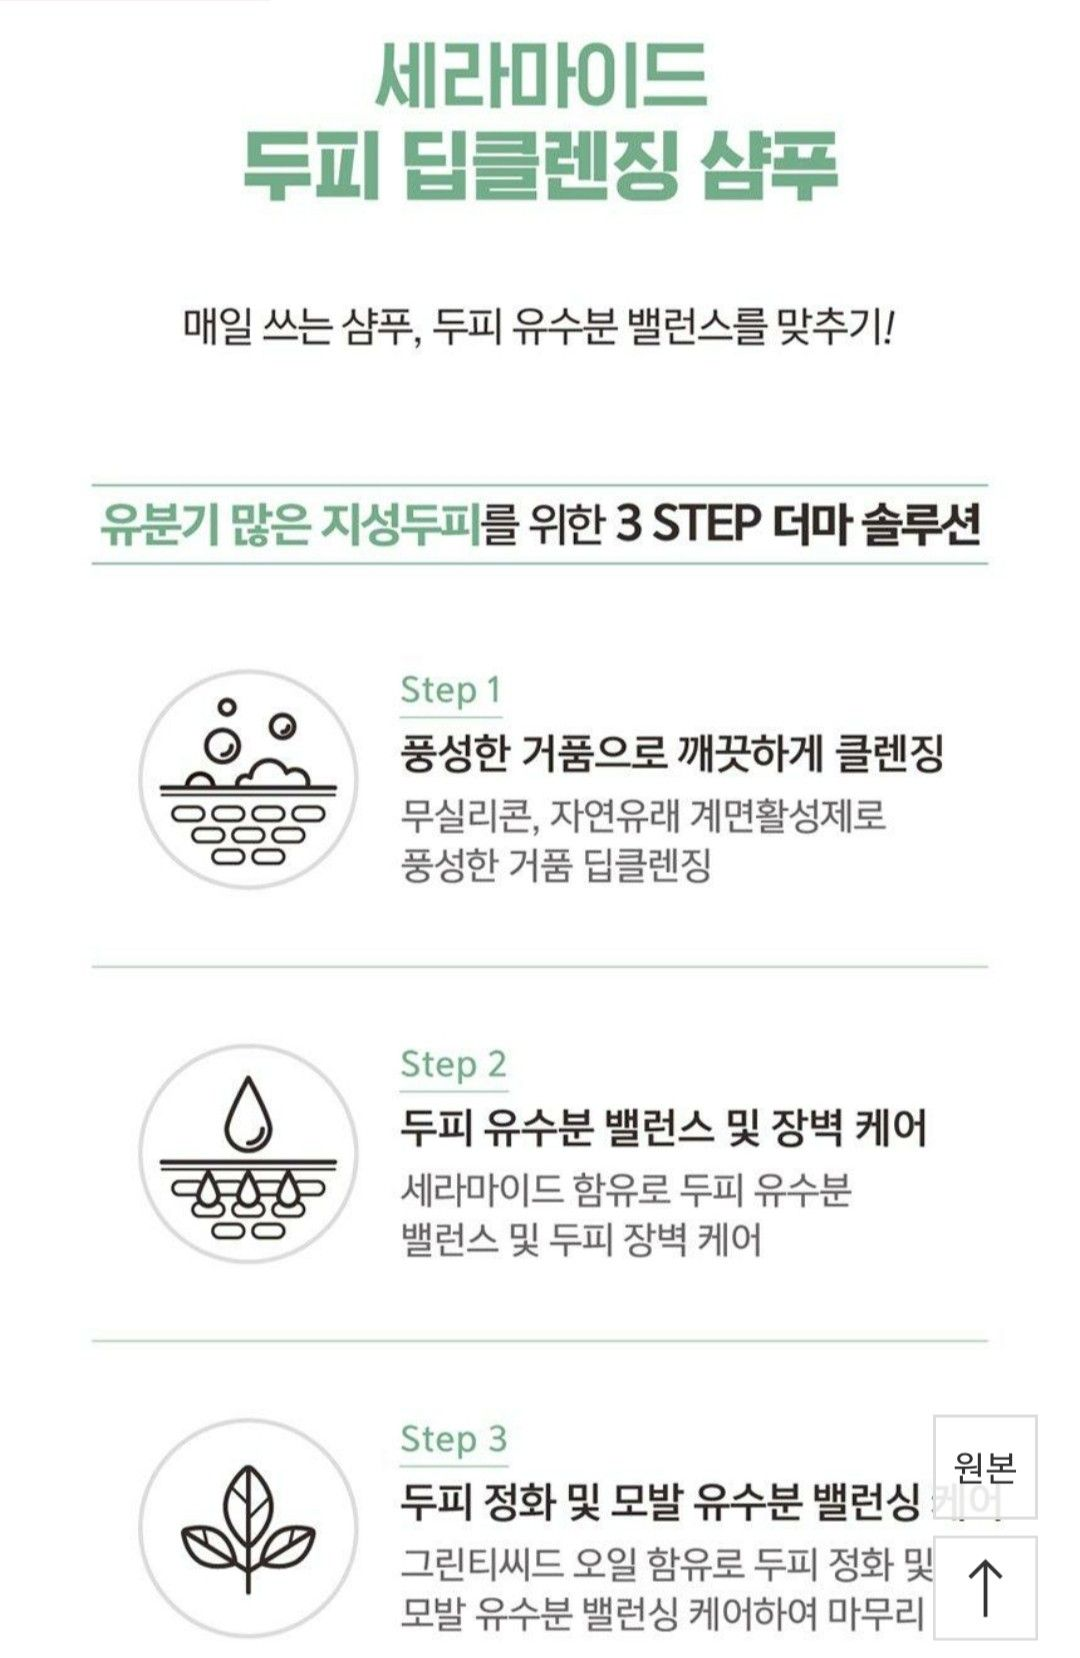 Pin by ju cherry on 레이아웃 in 2020 Web design, Words, Word